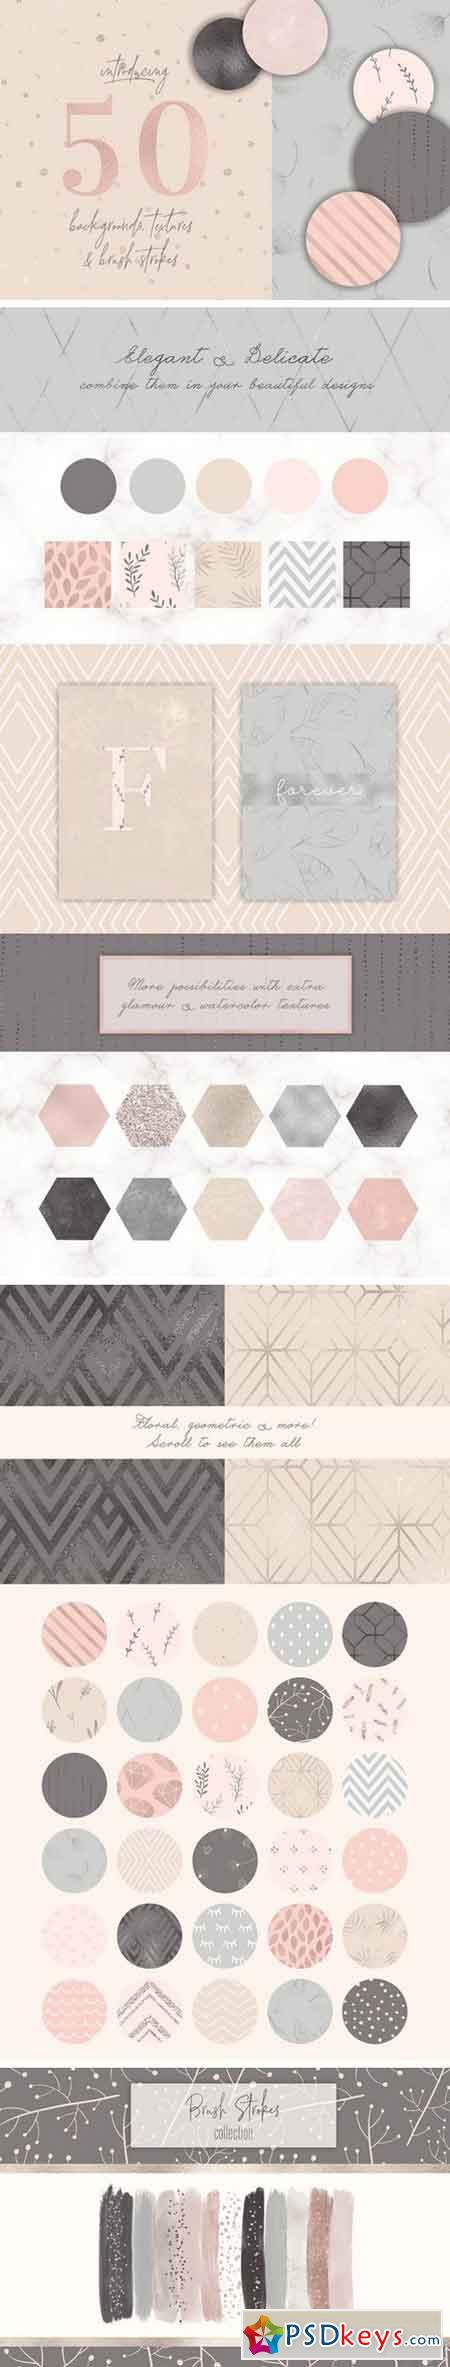 50 Delicate Backgrounds & Textures 2278732